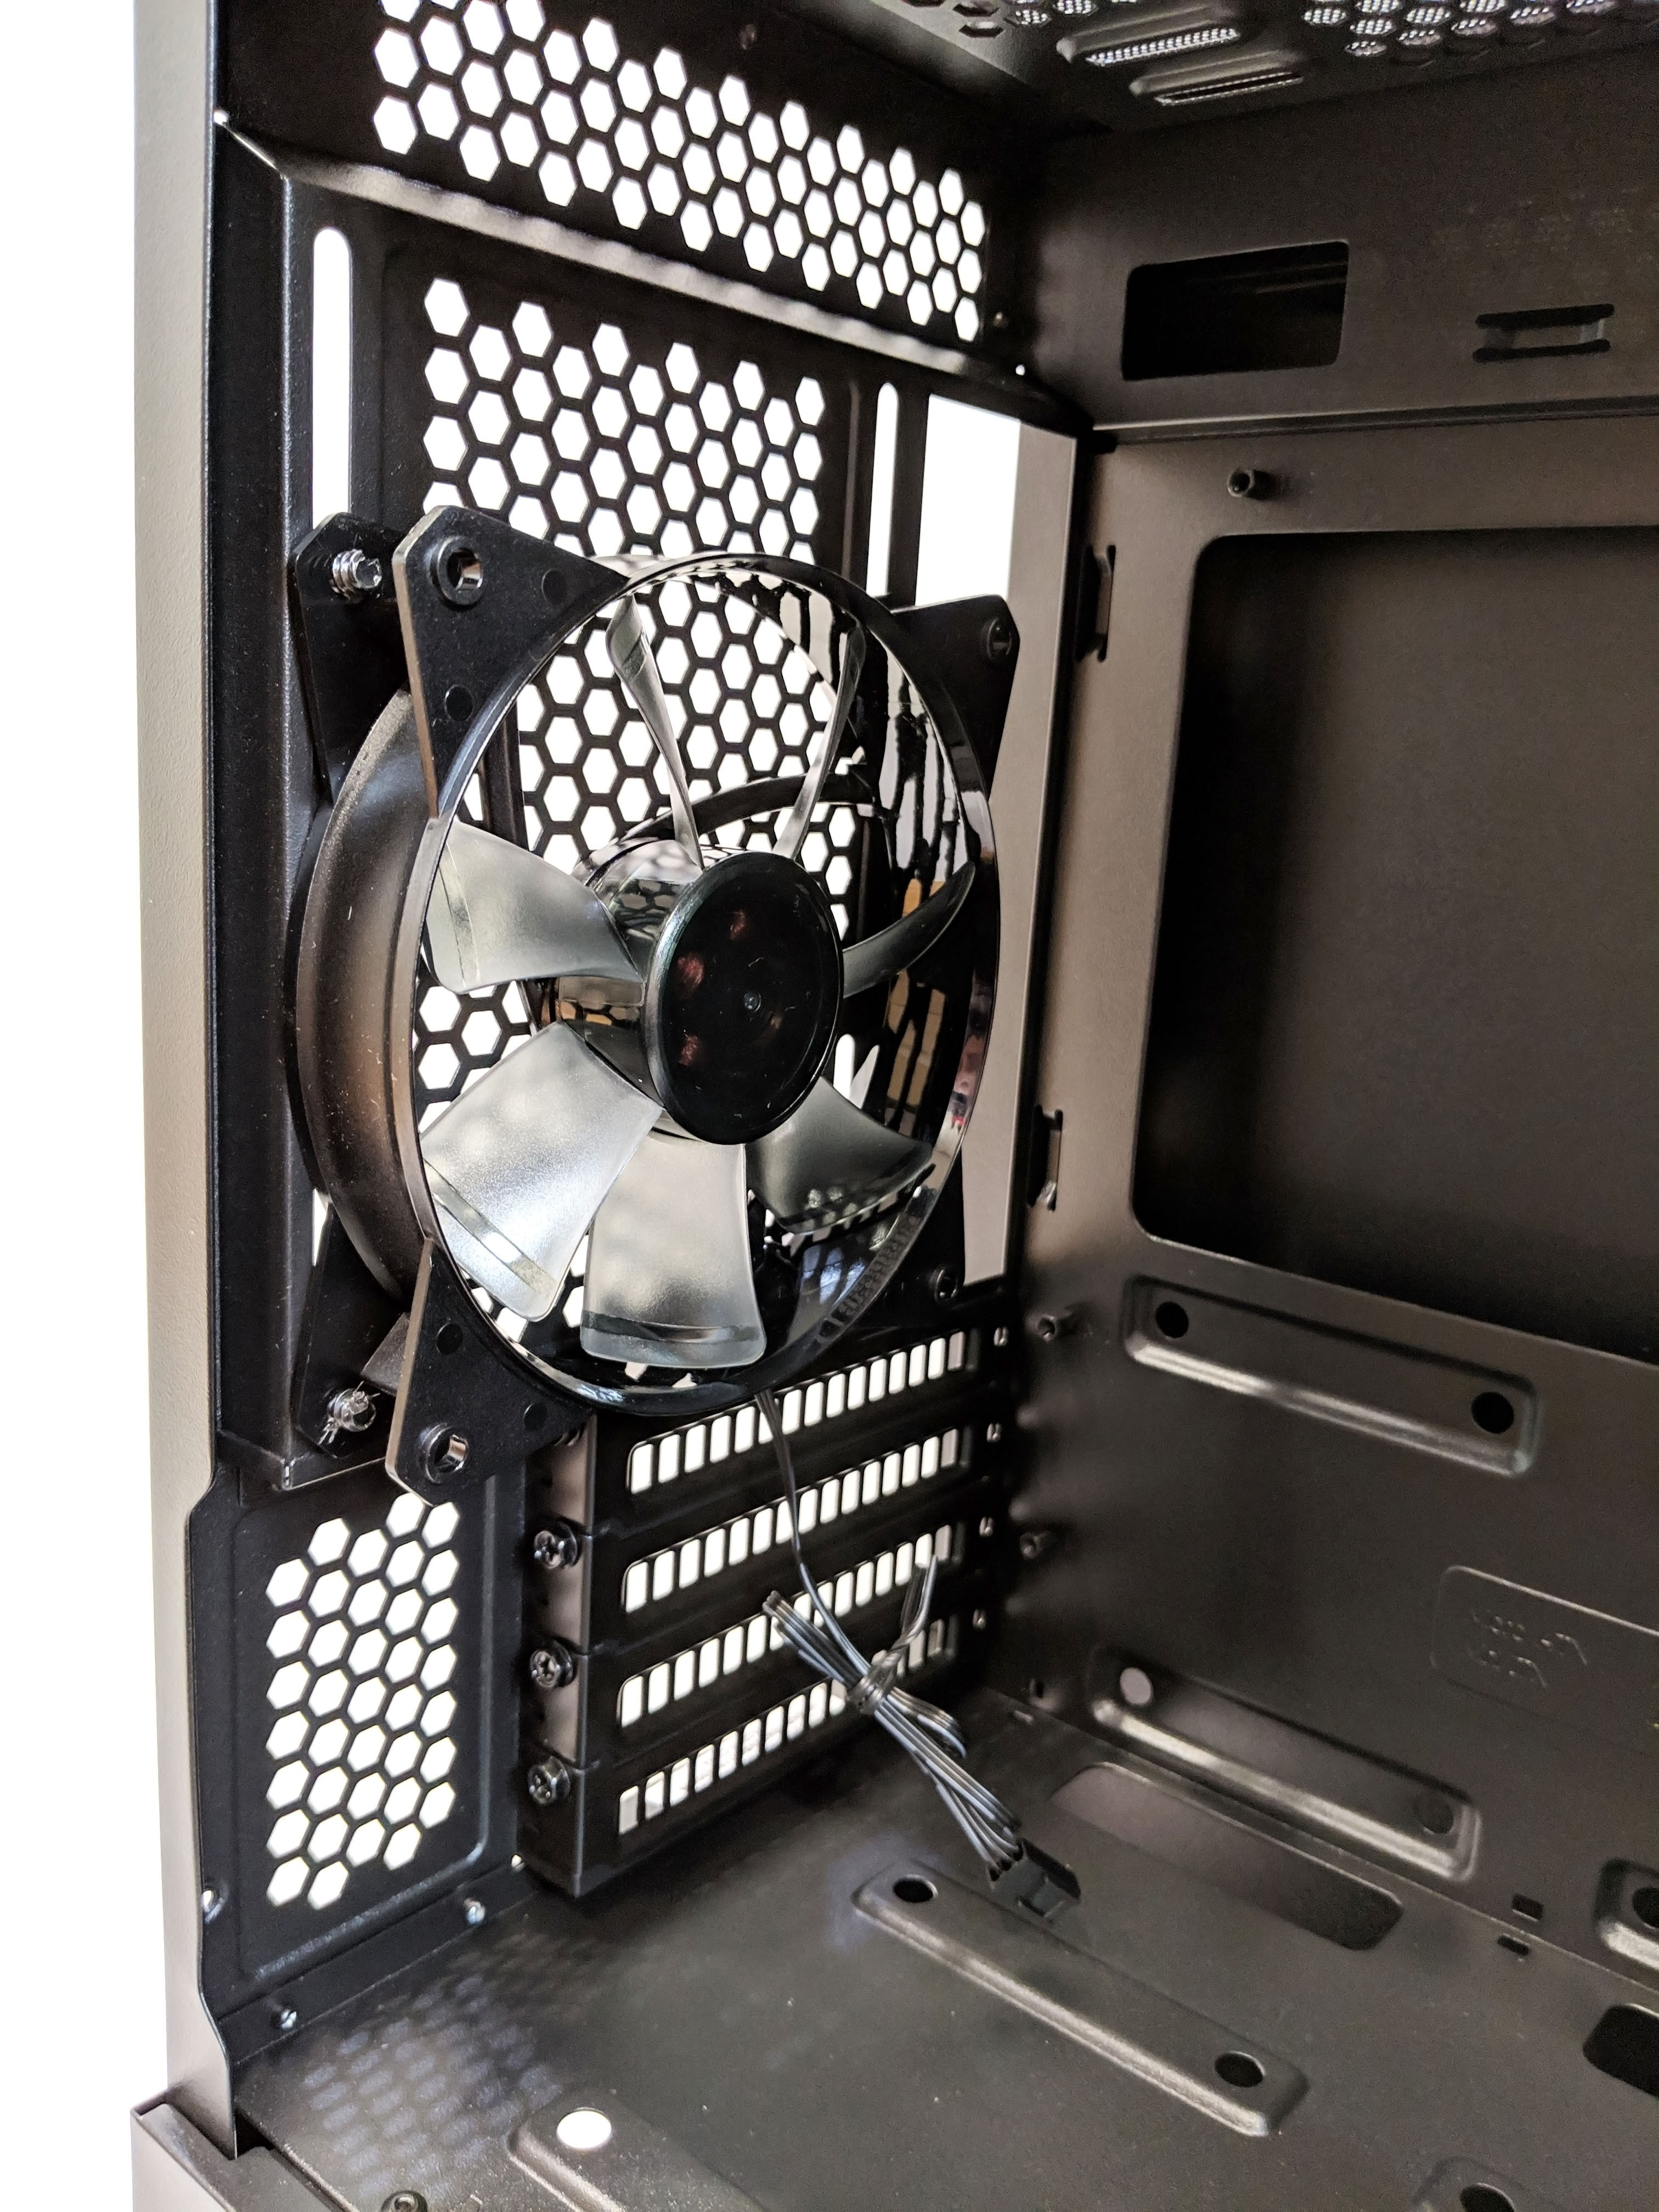 Cooler Master MasterBox NR400 Case Review – GND-Tech - Techregister